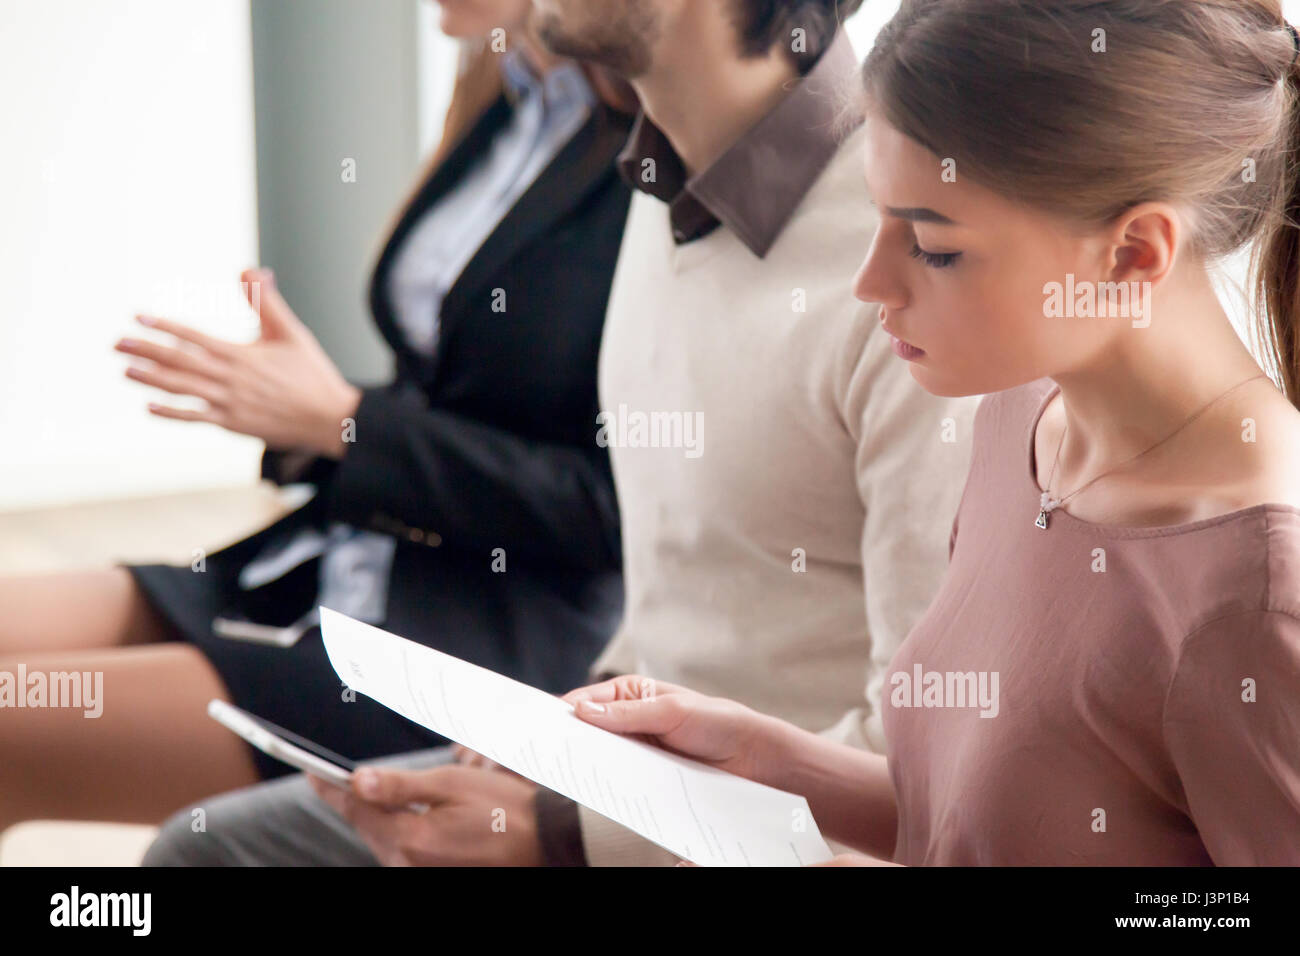 Young people waiting for job interview, audition or training ind - Stock Image